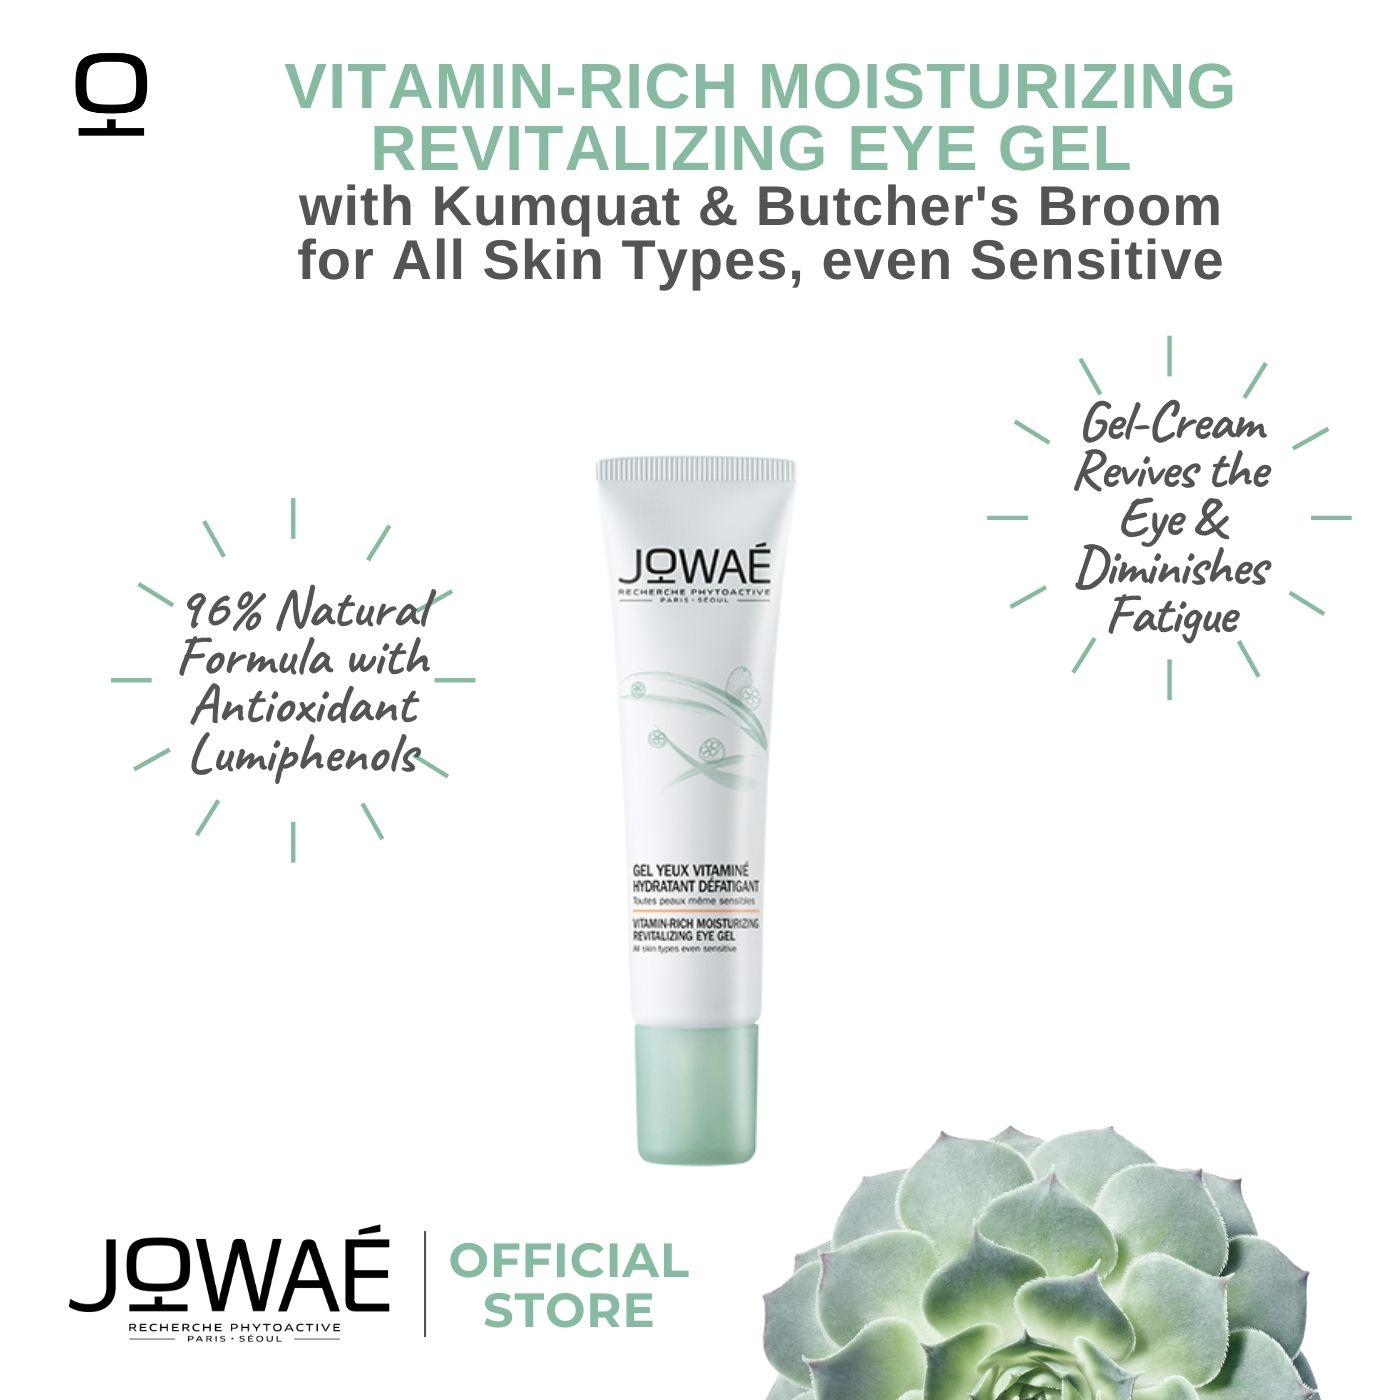 Jowae Vitamin-Rich Energizing Moisturizing Revitalizing Eye Gel With Kamquat & Butchers Broom For All Skin Types, Even Sensitive.